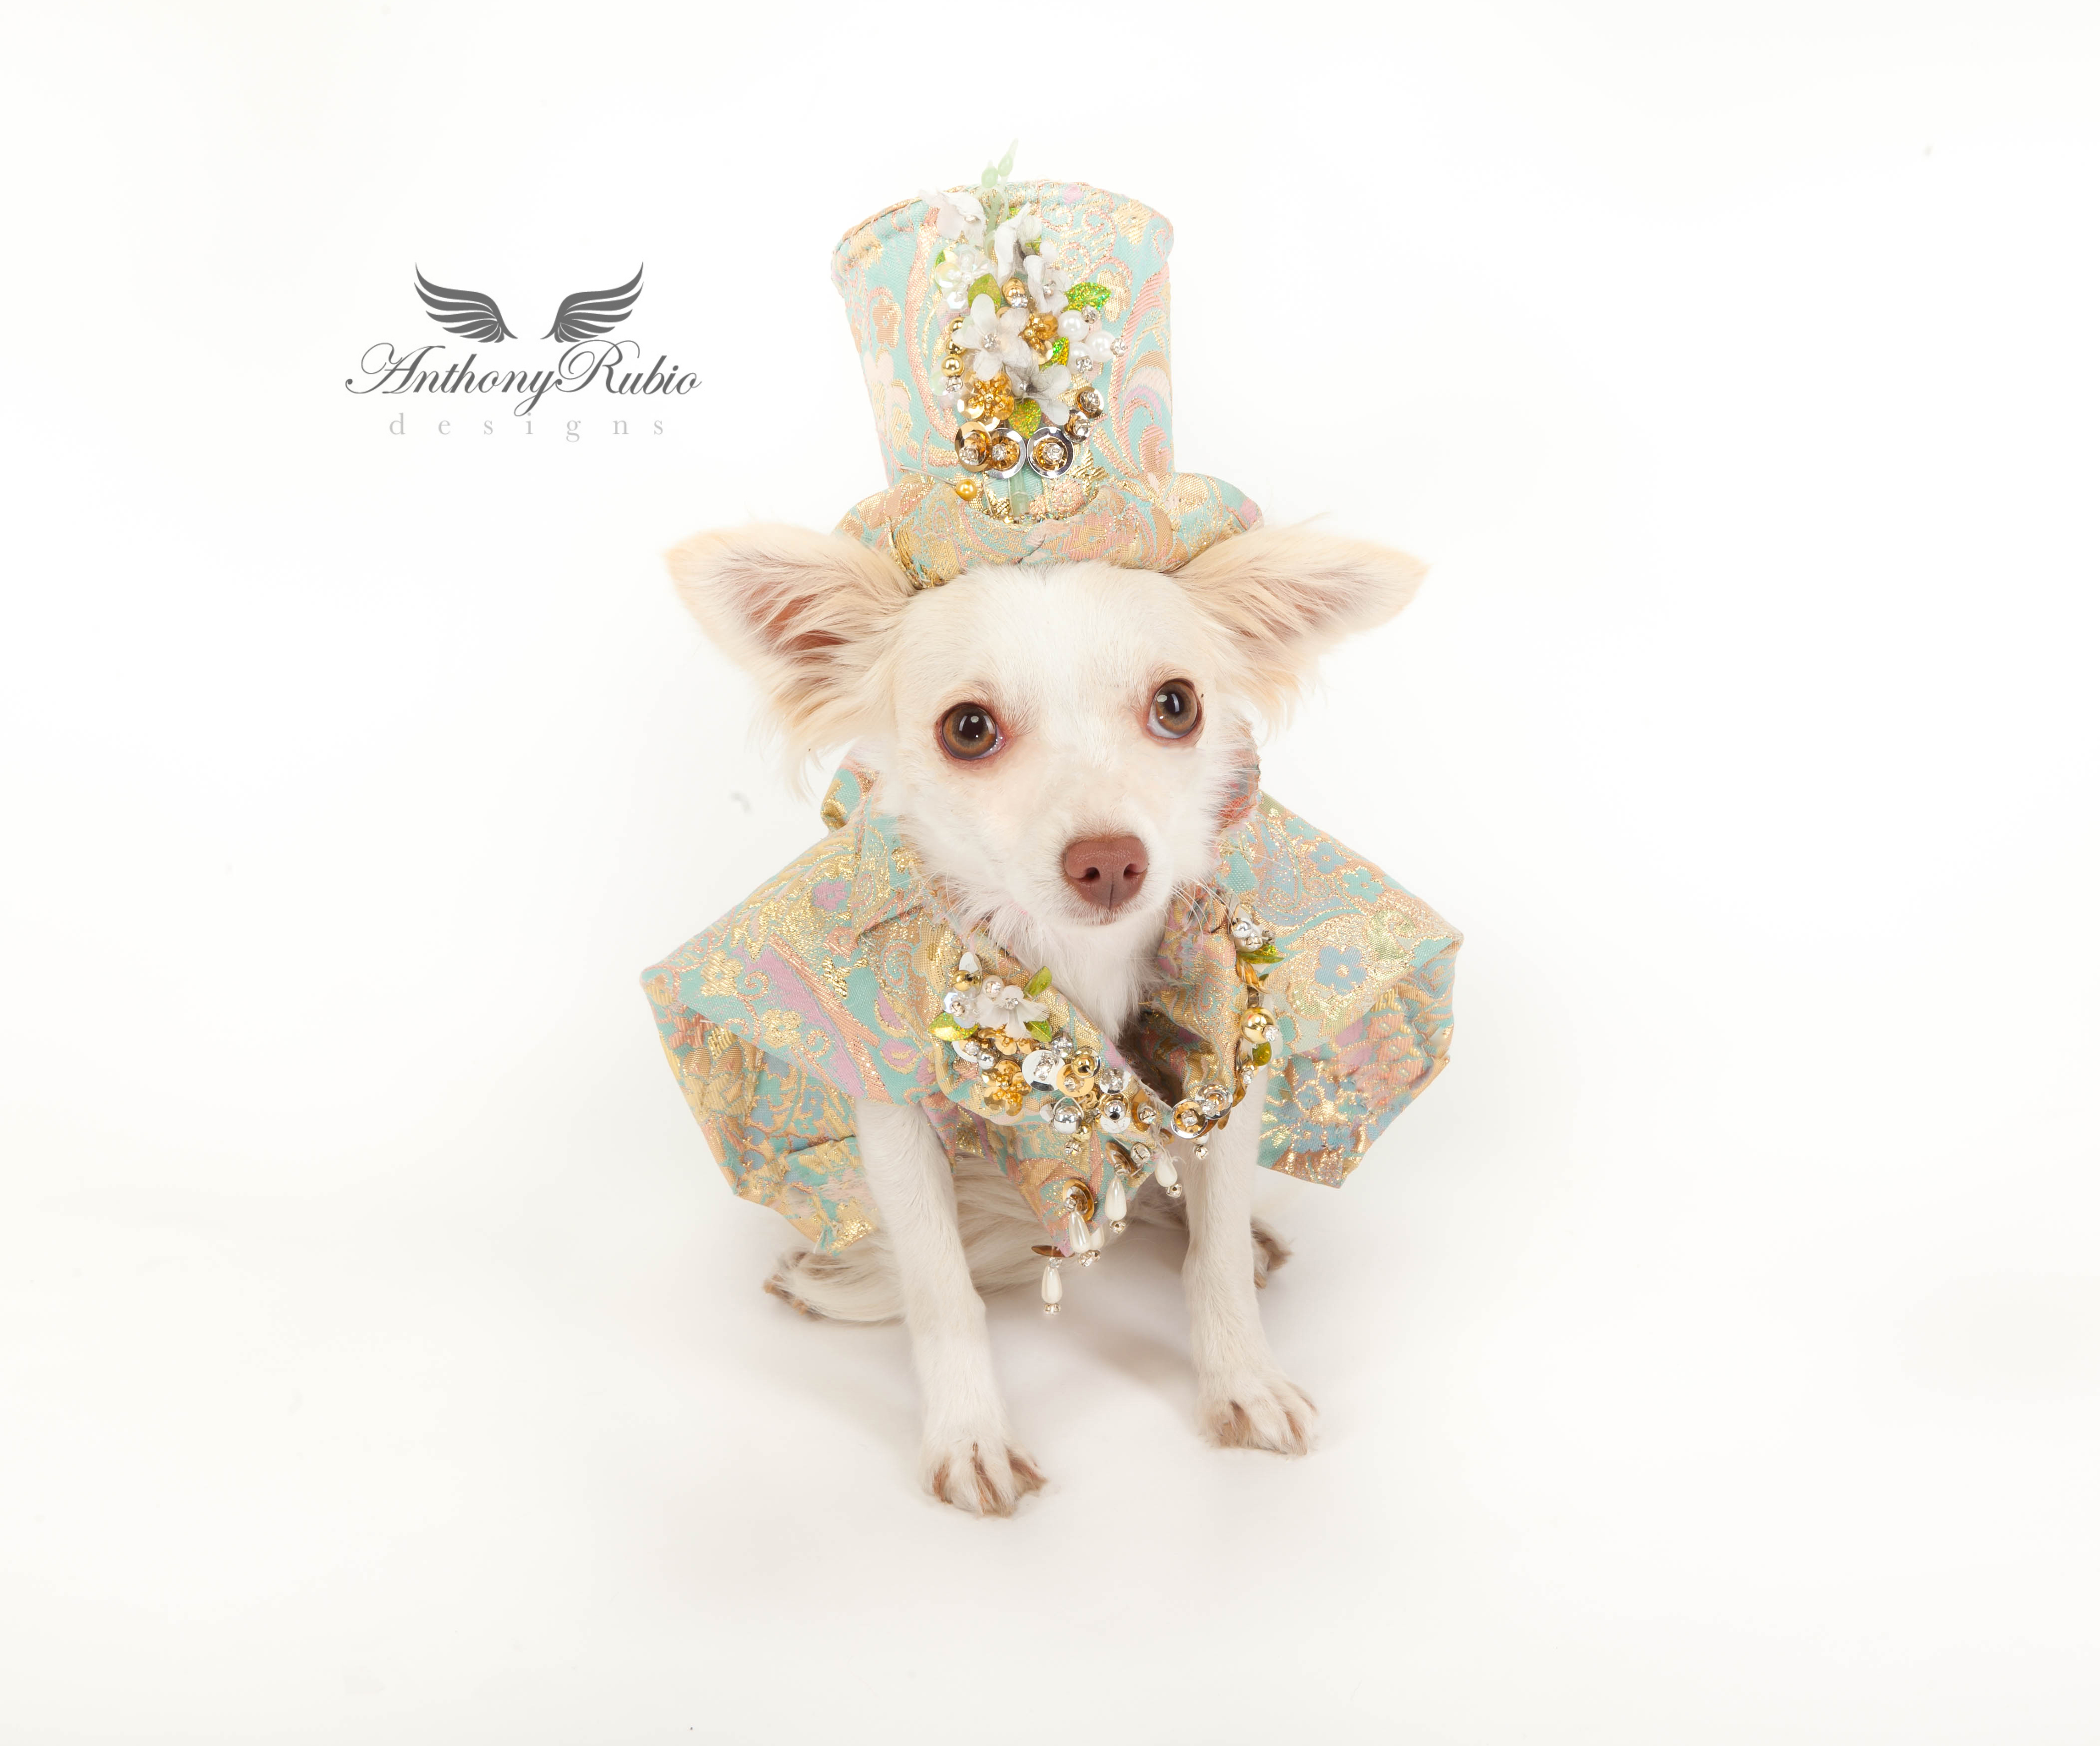 Dog Fashion by Anthony Rubio